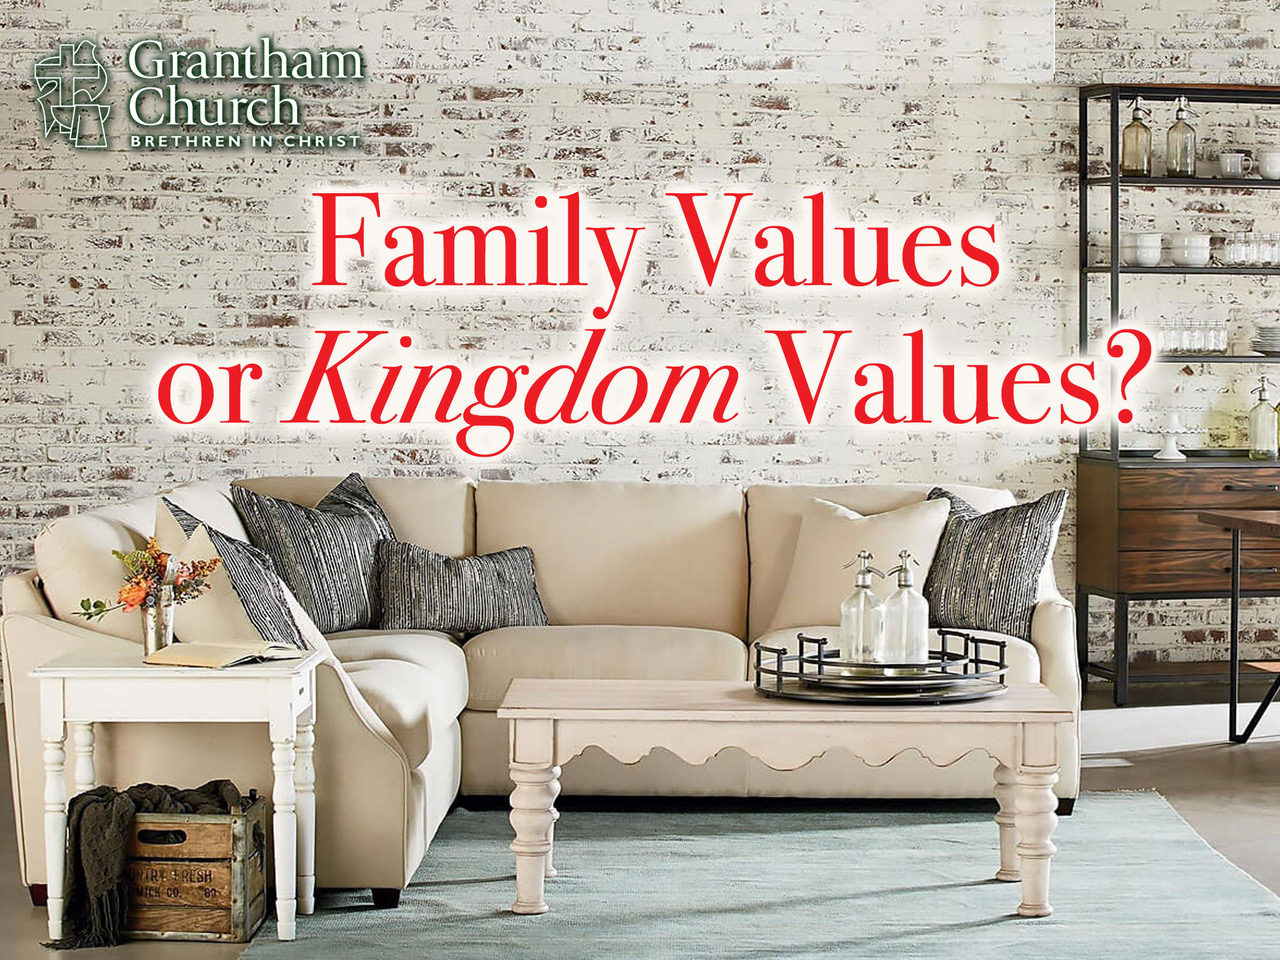 Family Values - Kingdom Values.jpeg